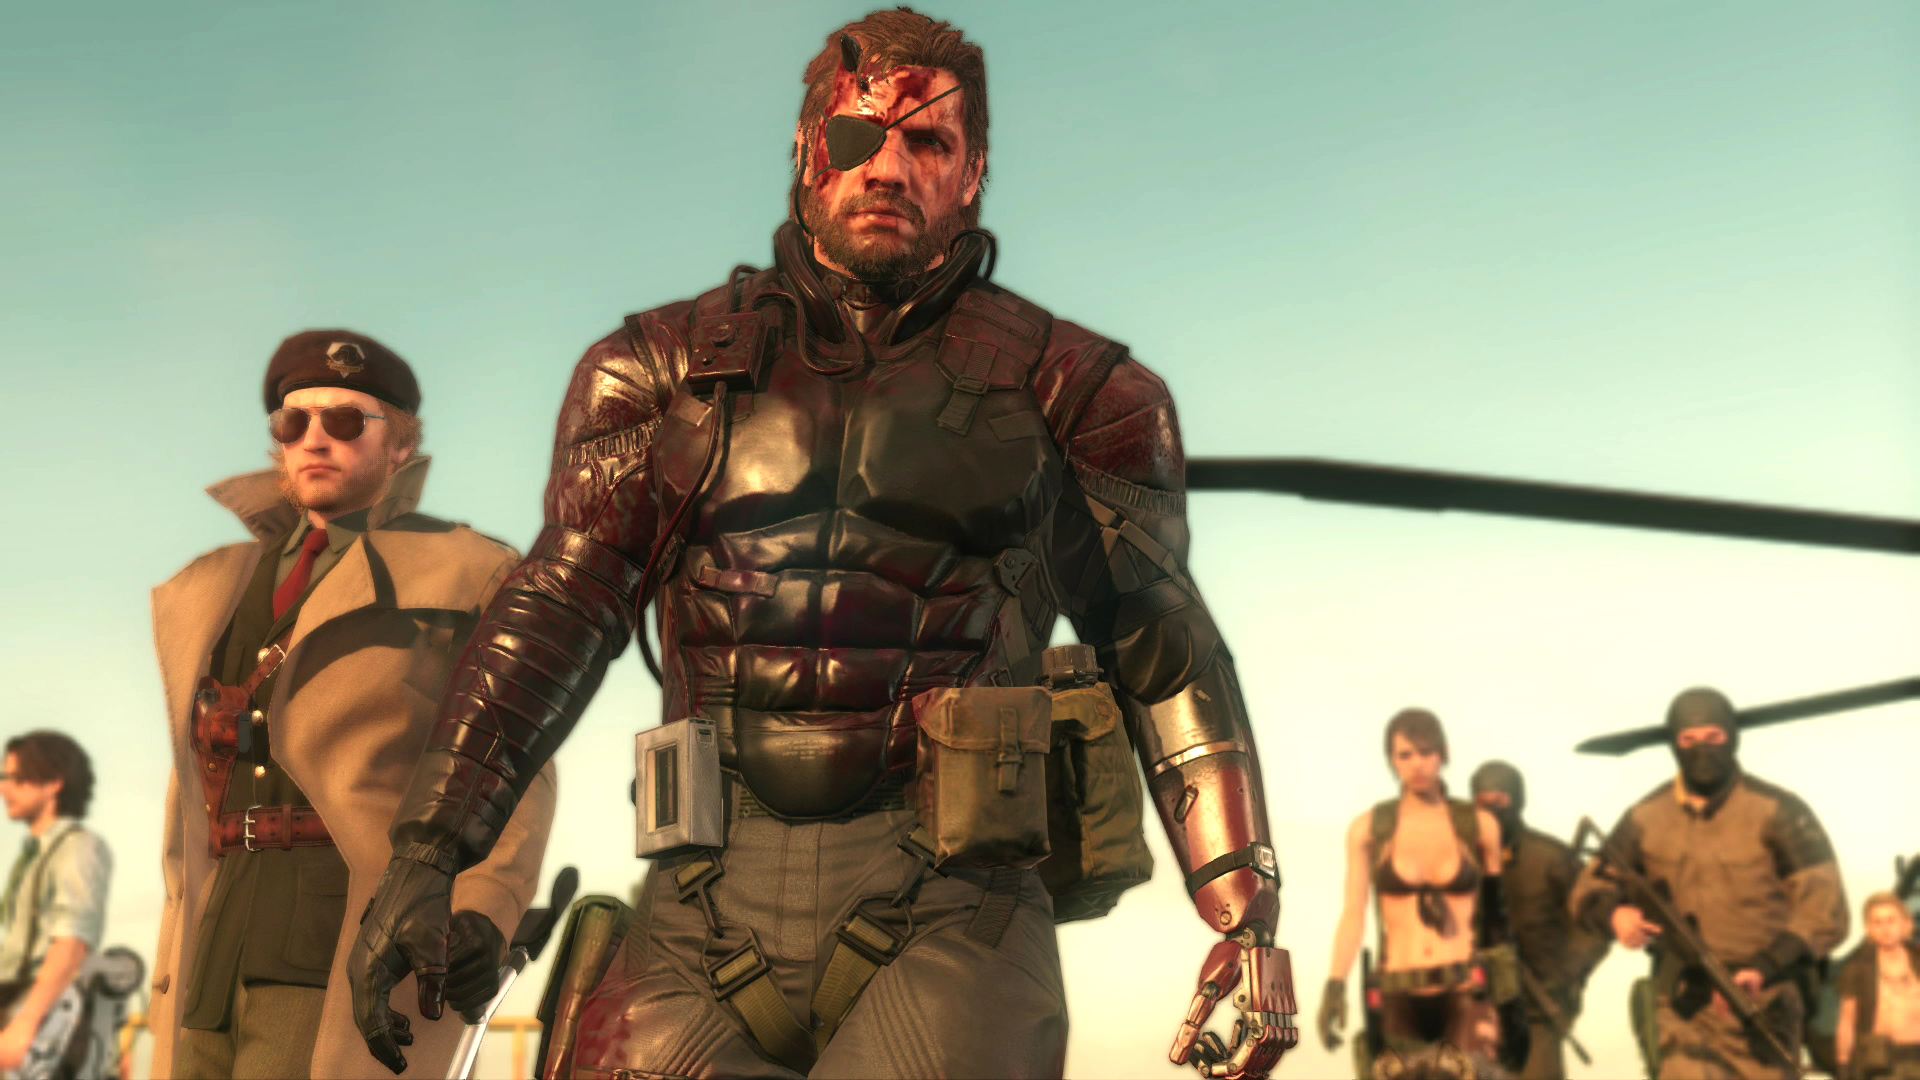 Metal Gear Solid V: The Phantom Pain image 1